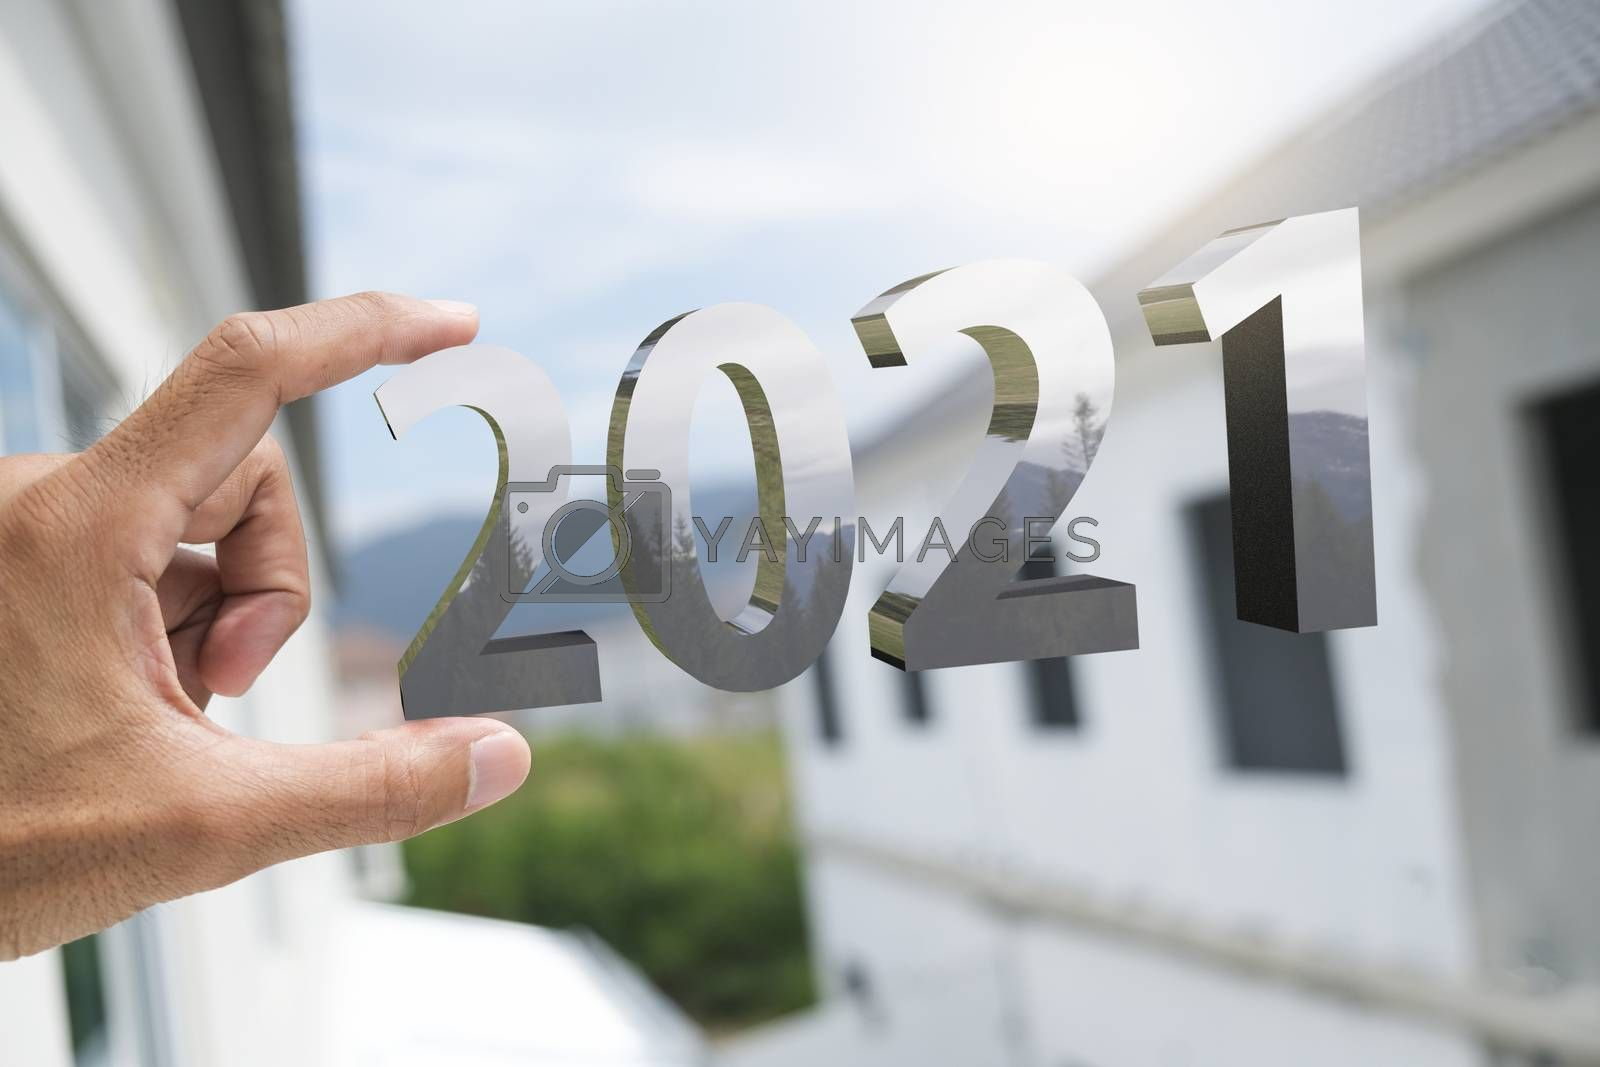 People man hand holding numbers 2021 Metaphor In the new year 2021 festival With open window To get To success In the business world Count down change 2020 to 2021 year